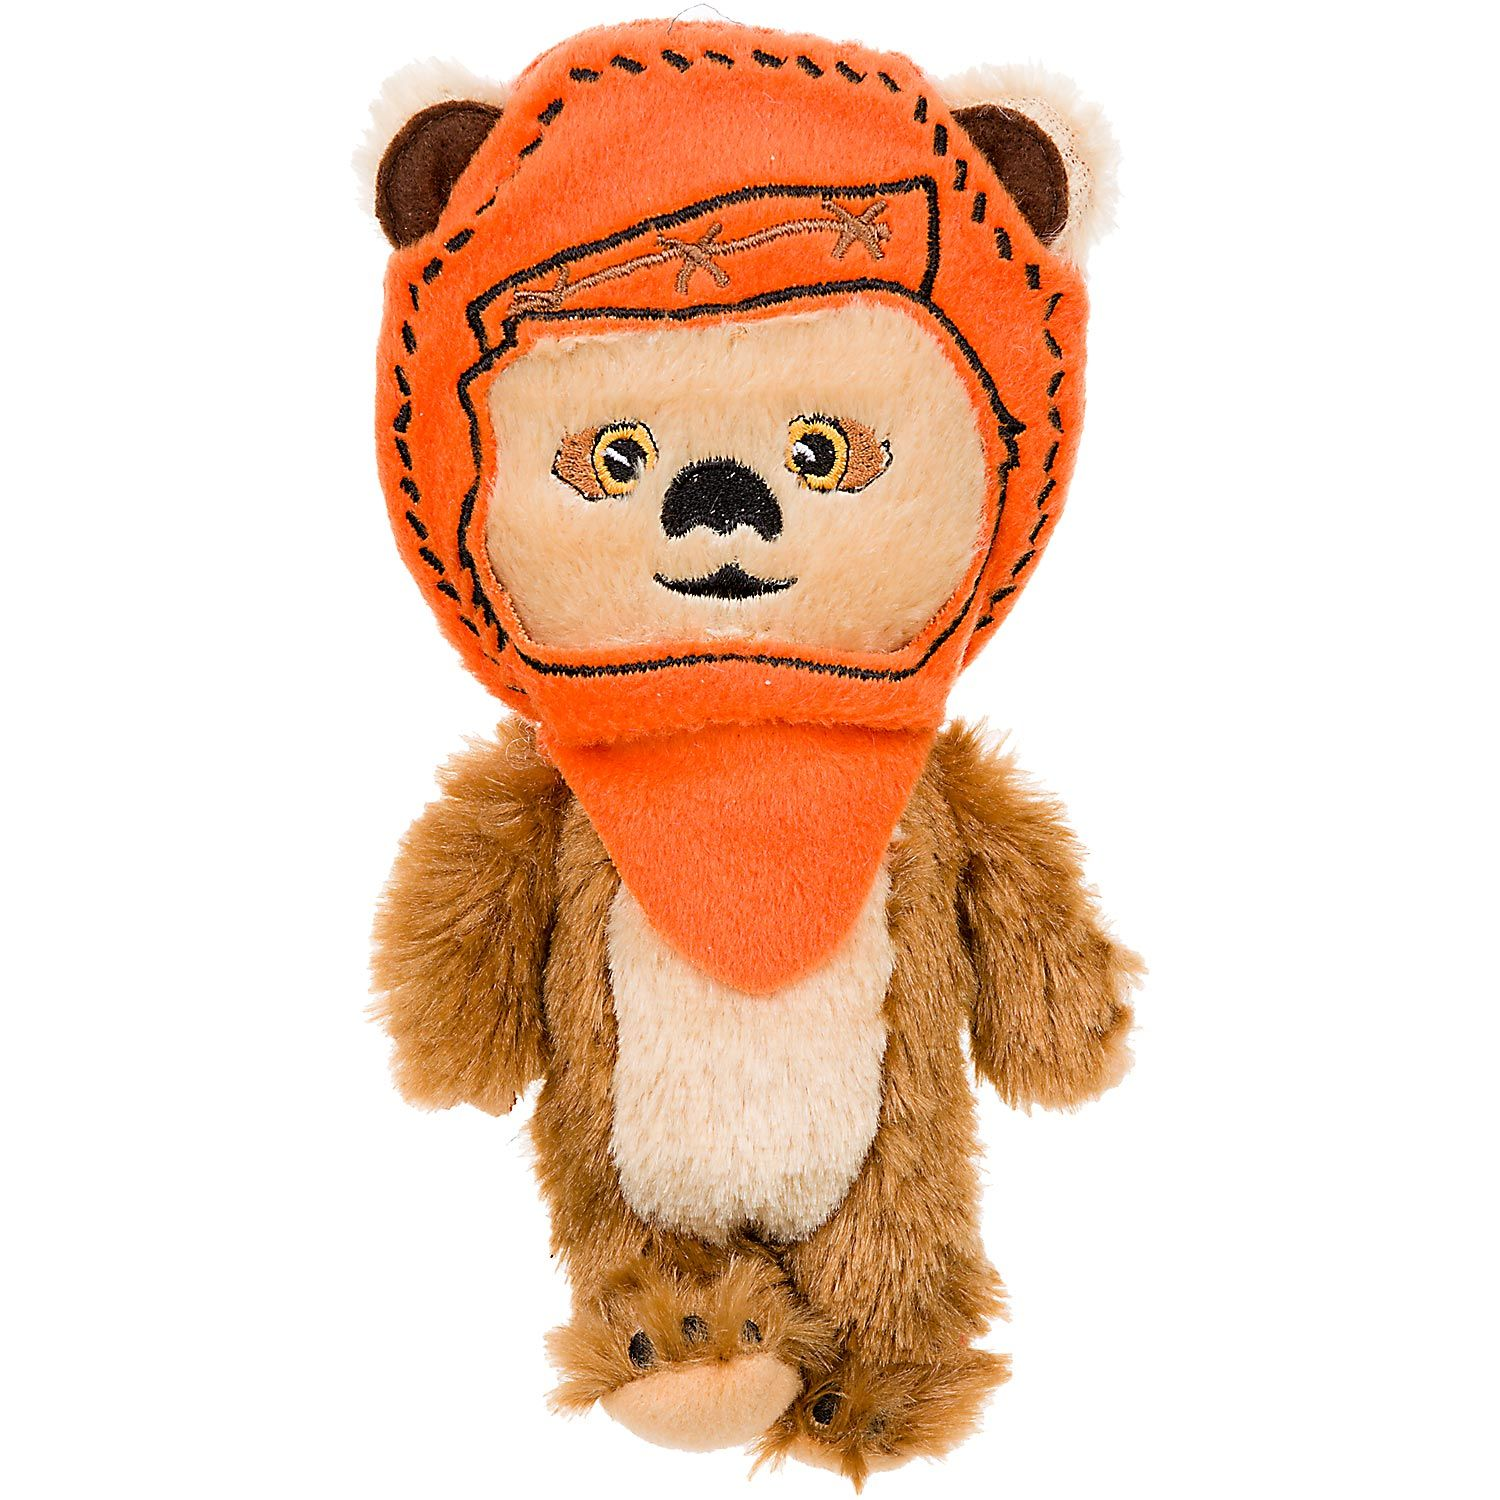 Star Wars Ewok Plush Dog Toy This Is The Toy For Anyone Who S